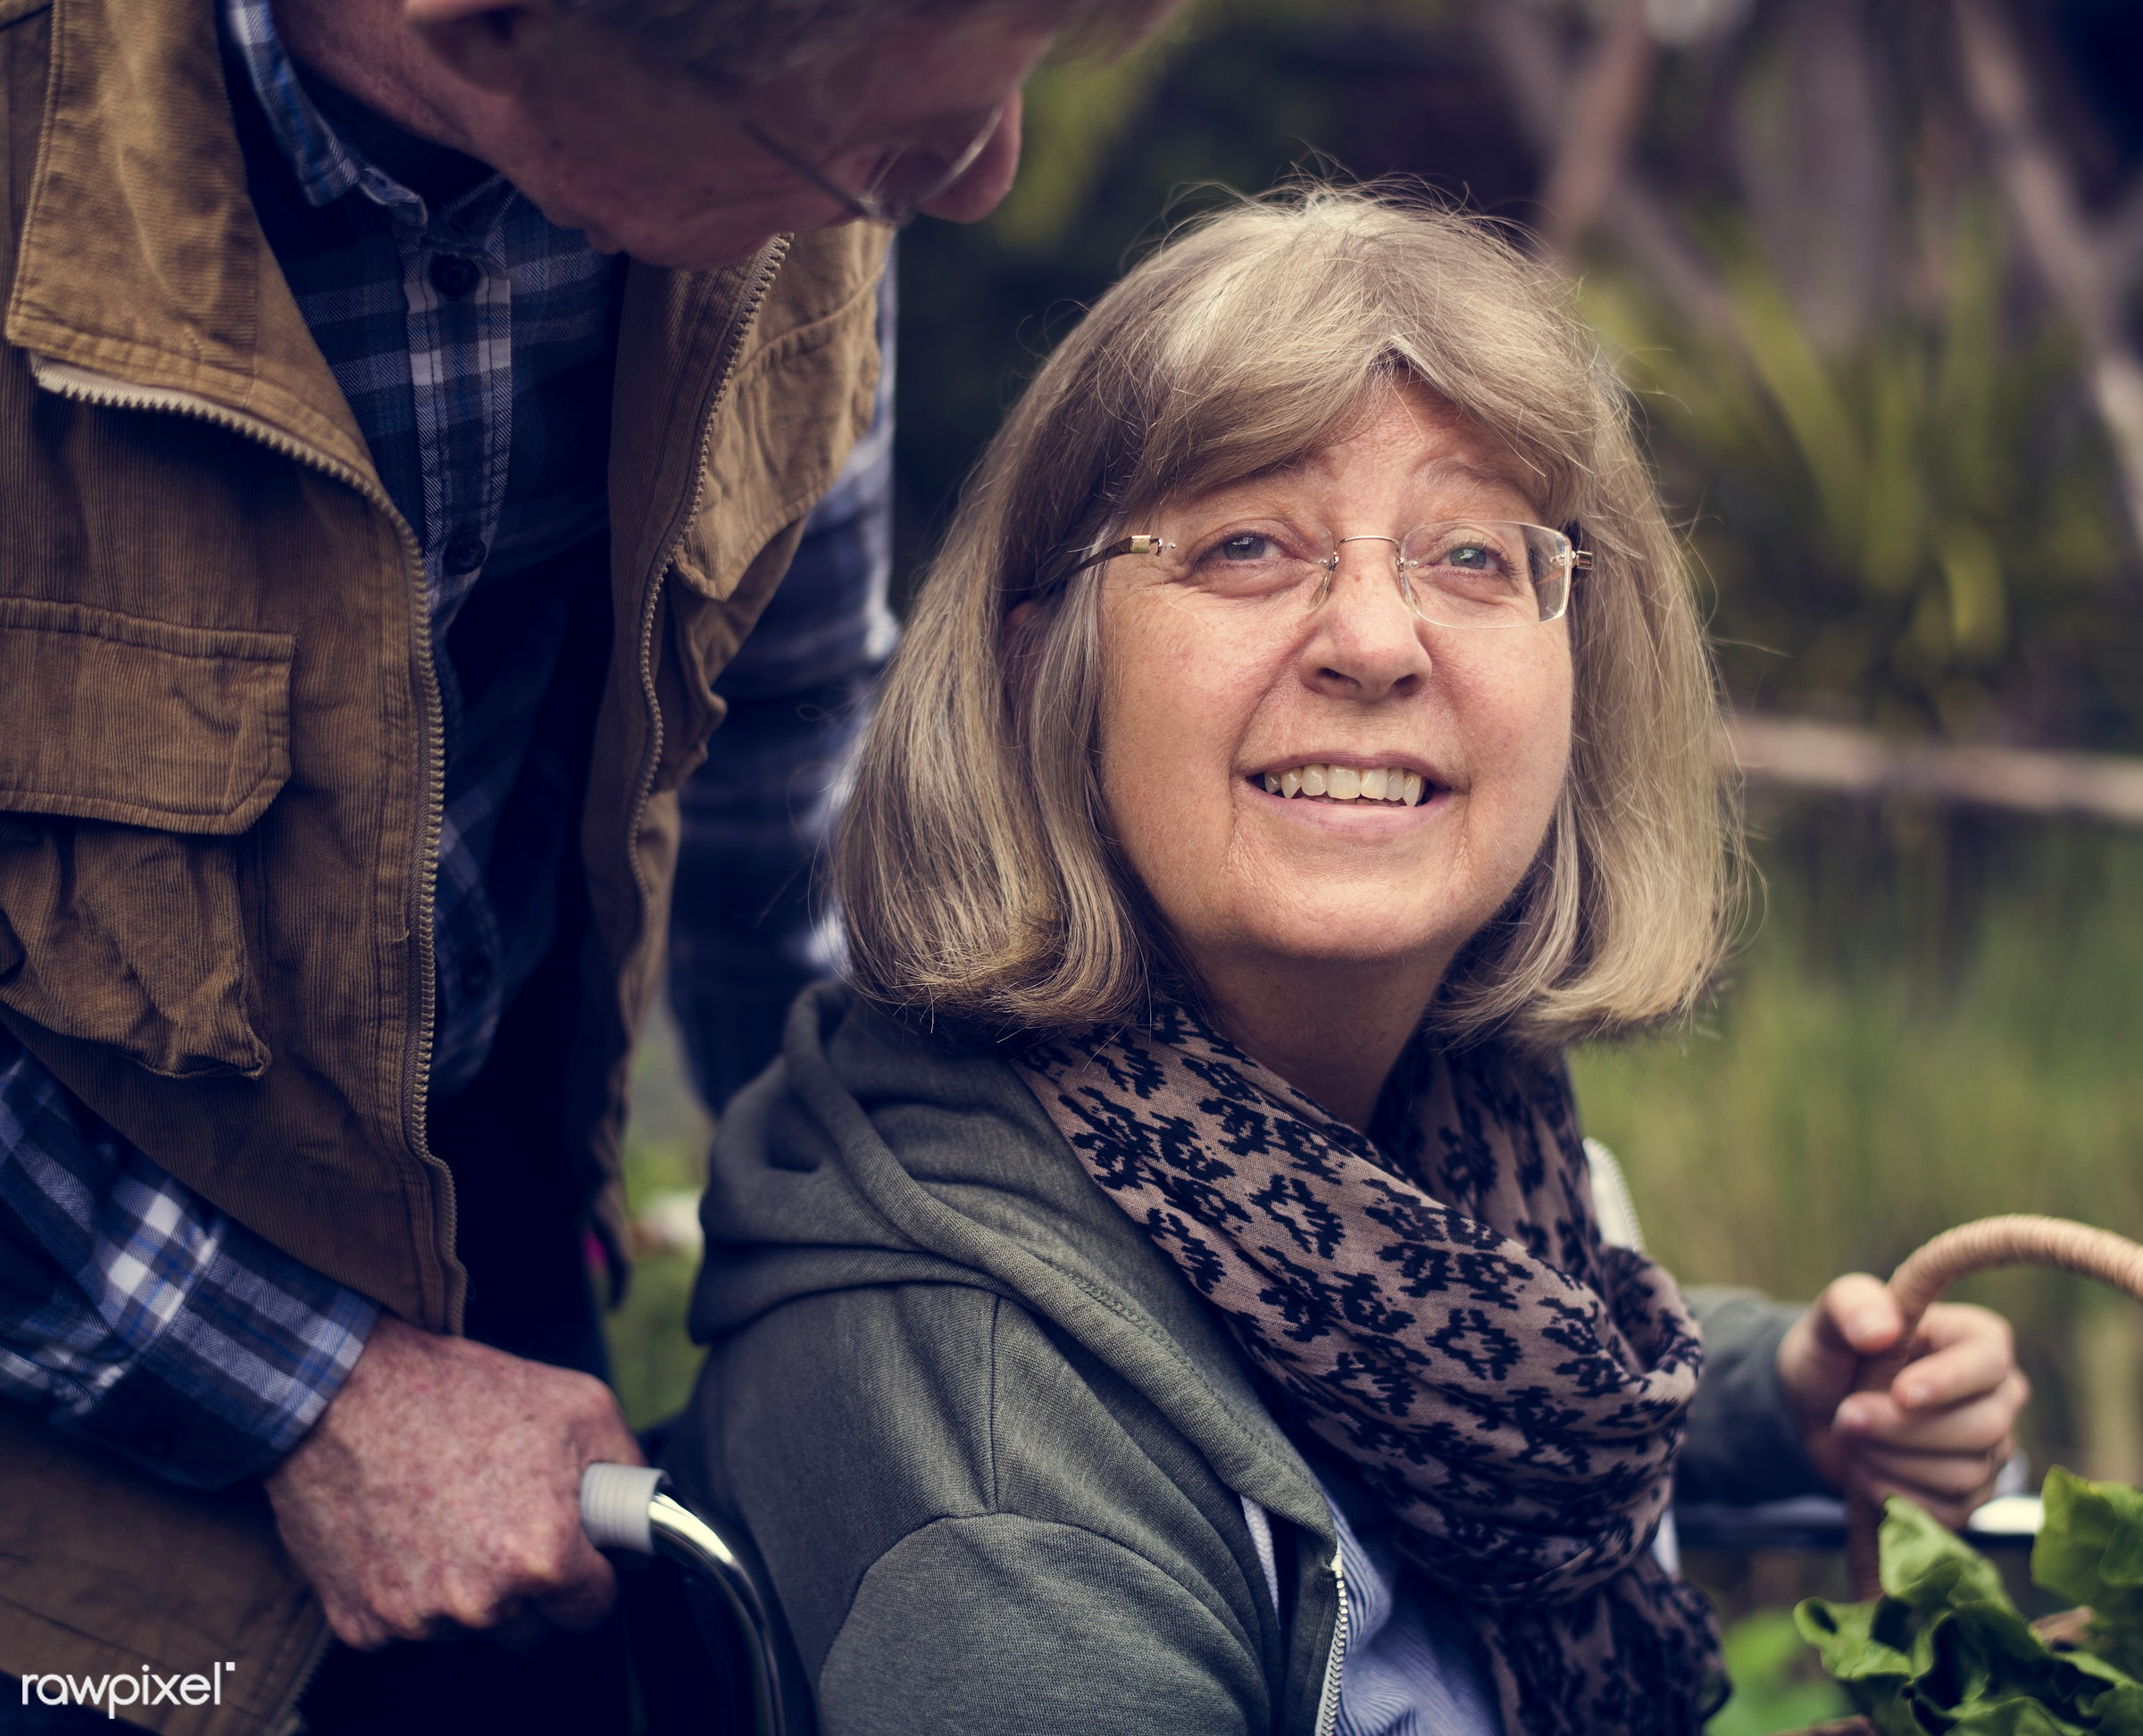 expression, person, holding, people, together, crop, love, retirement, nature, woman, family, lifestyle, cultivation,...